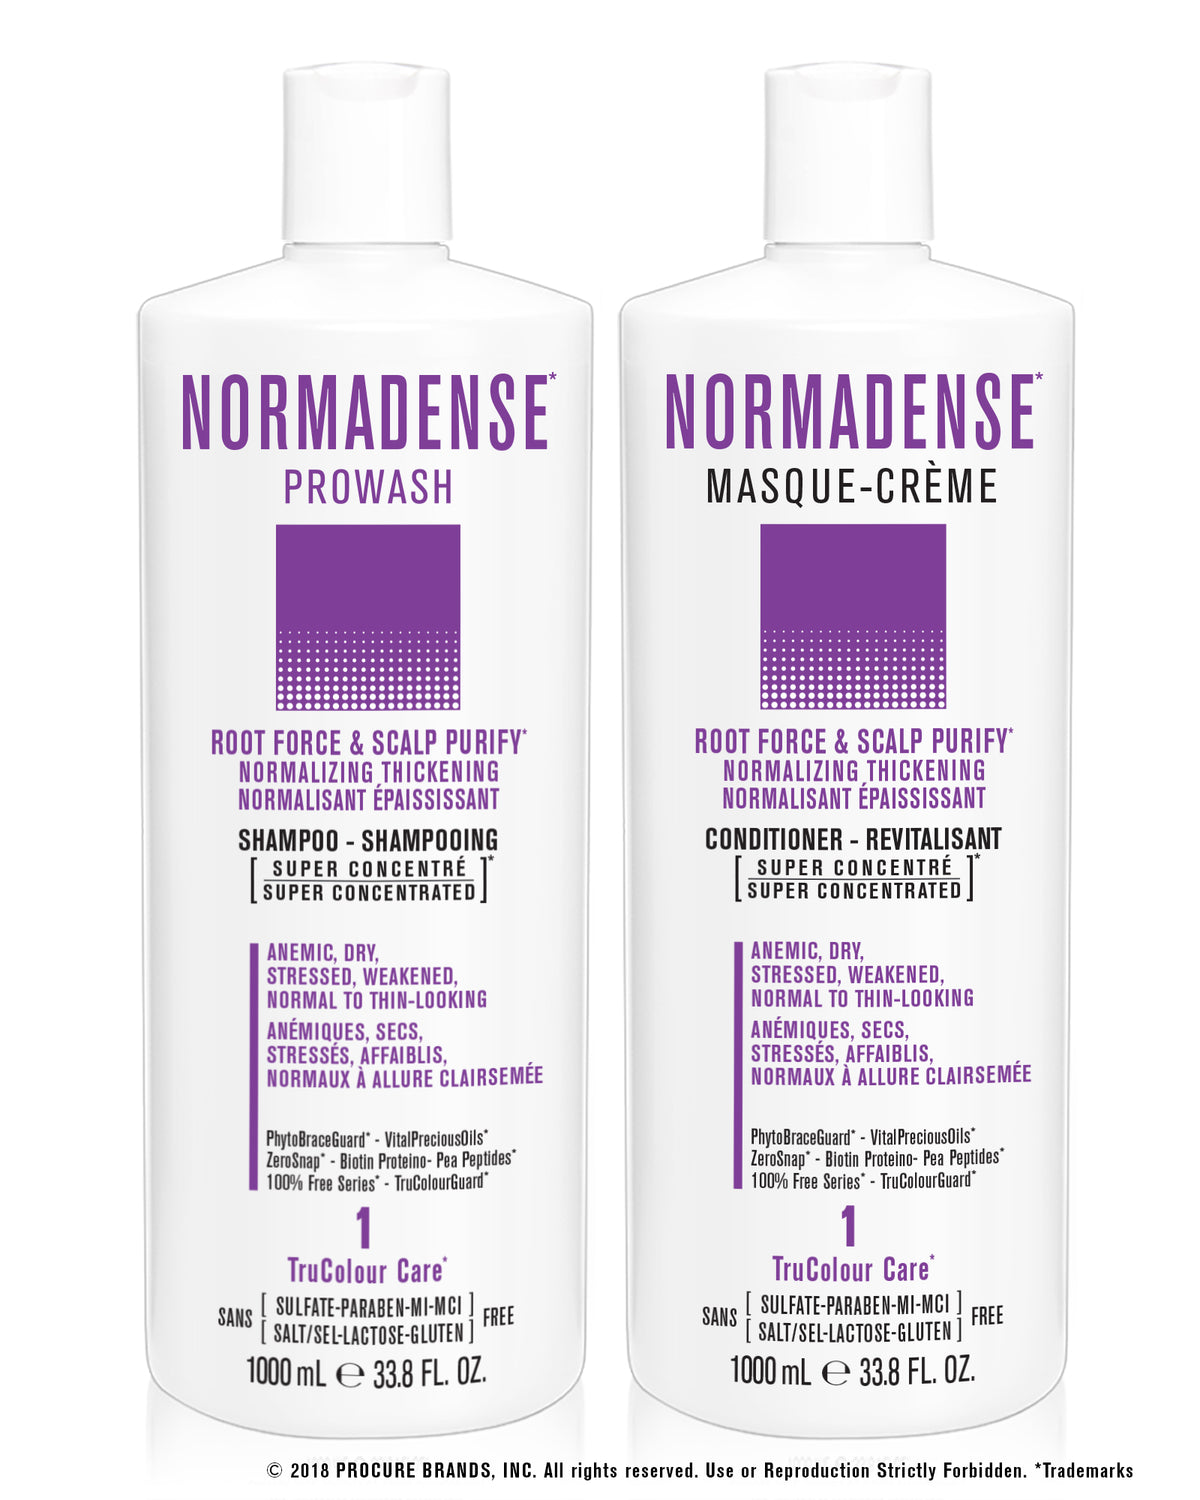 GIFT SETS- 6 X Trio NORMADENSE 1 Root Force & Scalp Purify Normalizing Thickening + Duo Liters - SNOBGIRLS.com